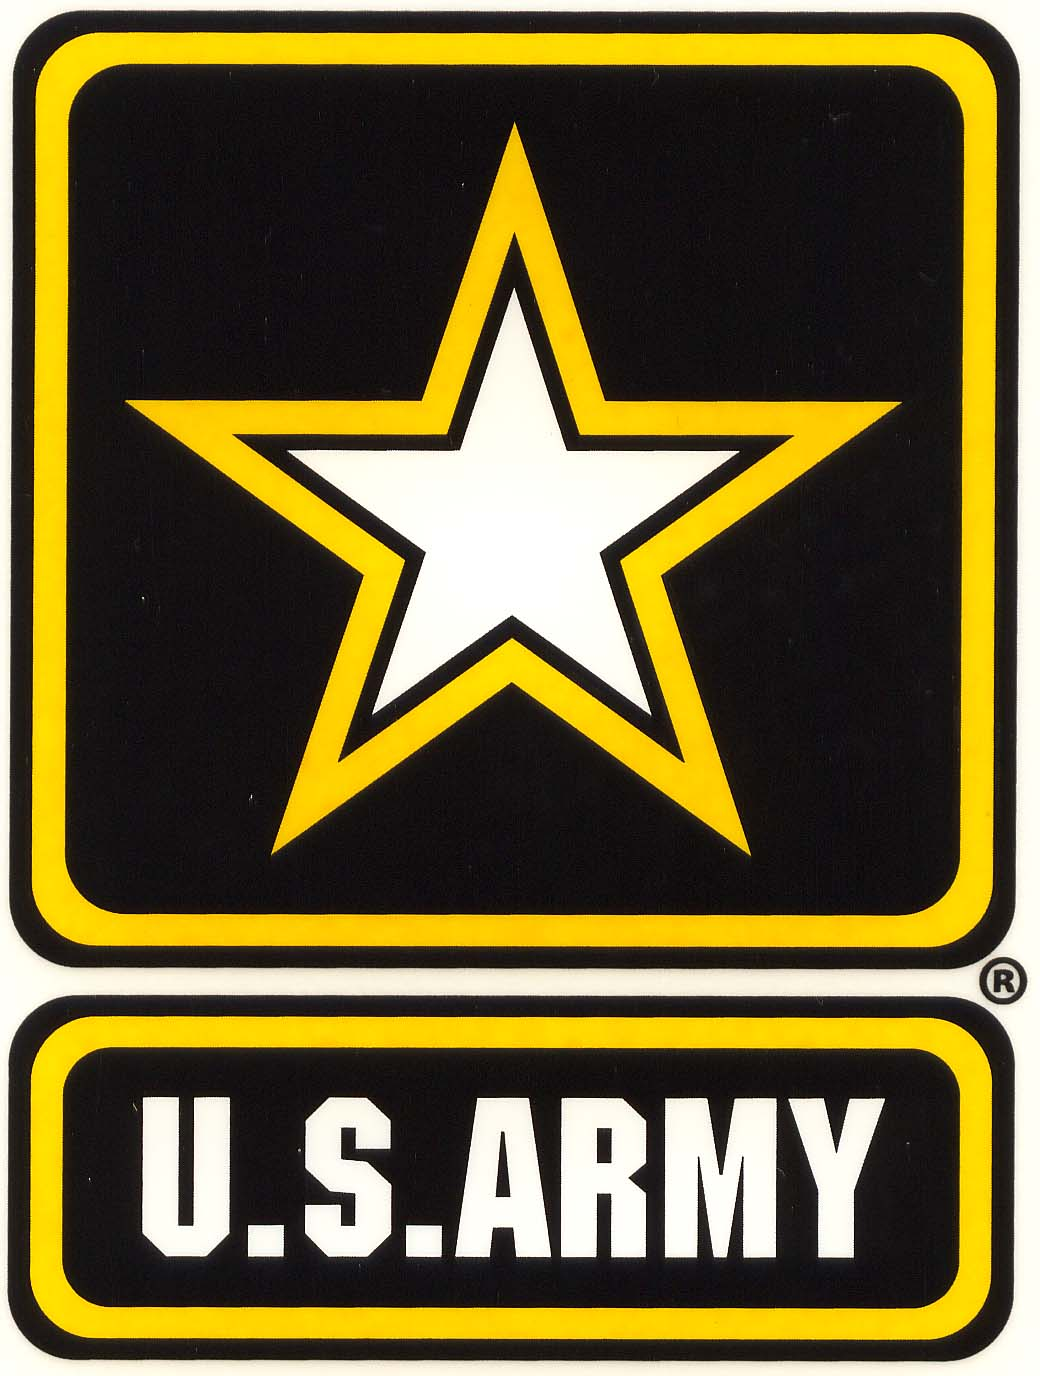 Us army emblem clipart banner transparent download Military clip art free army clipart clipartix - Cliparting.com banner transparent download